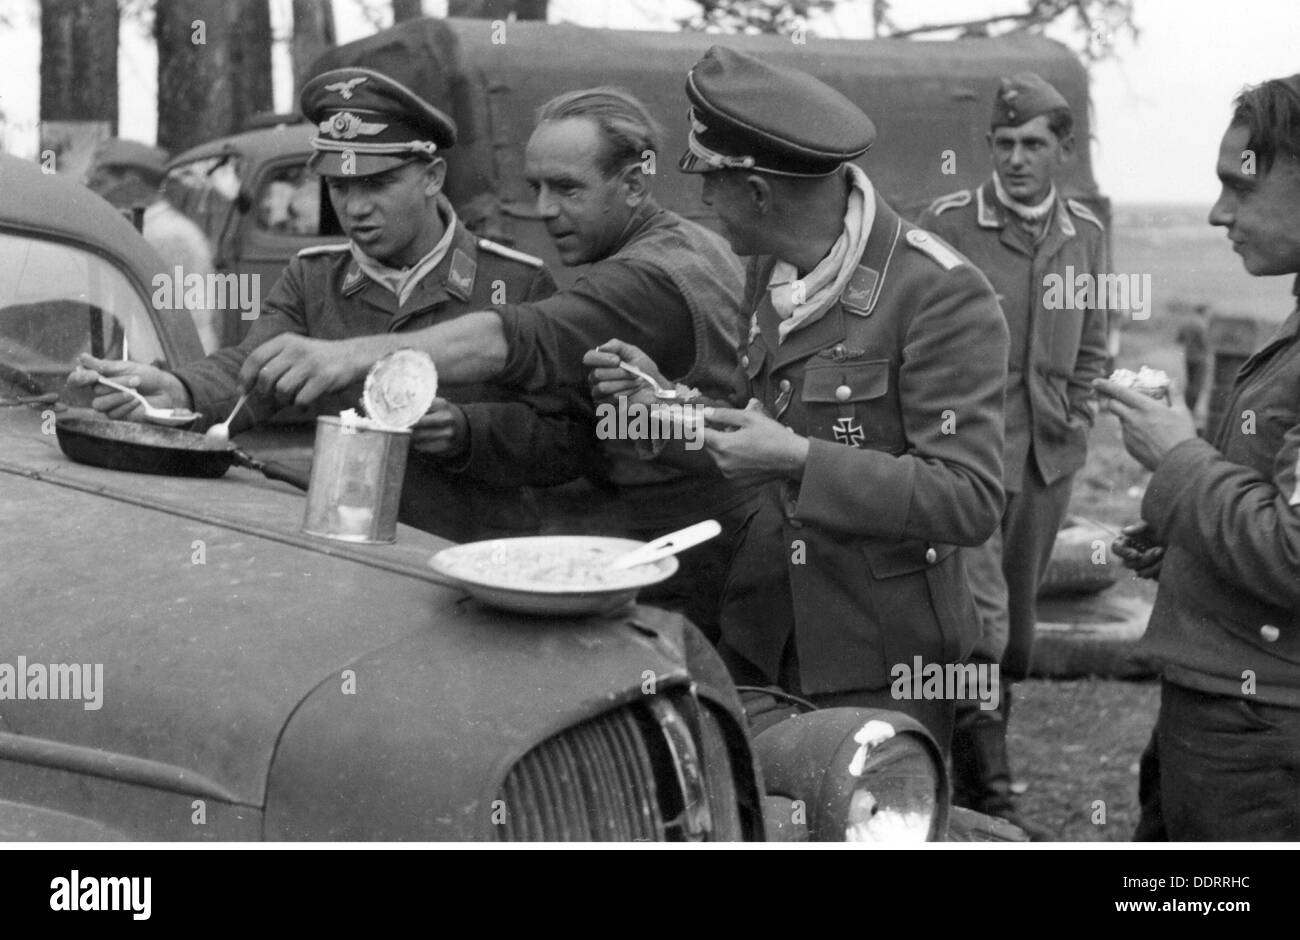 Second World War / WWII, Russia, 1941, German war correspondents during dinner, September 1941, journalist, journalists, propaganda company, soldiers, soldier, people, men, man, break, breaks, meal, meals, dinner, eating, eat, foodstuff, mess, provisions, tin, can, tins, cans, tinned food, canned food, halt, advance, Barbarossa Operation, German Invasion of the Soviet Union, Russian campaign, campaign in Russia, campaign in the East, Soviet Union, USSR, Union of Socialist Soviet Republics, German Reich, Third Reich, 1940s, 40s, 20th century, second, 2nd, world , Additional-Rights-Clearences-NA - Stock Image